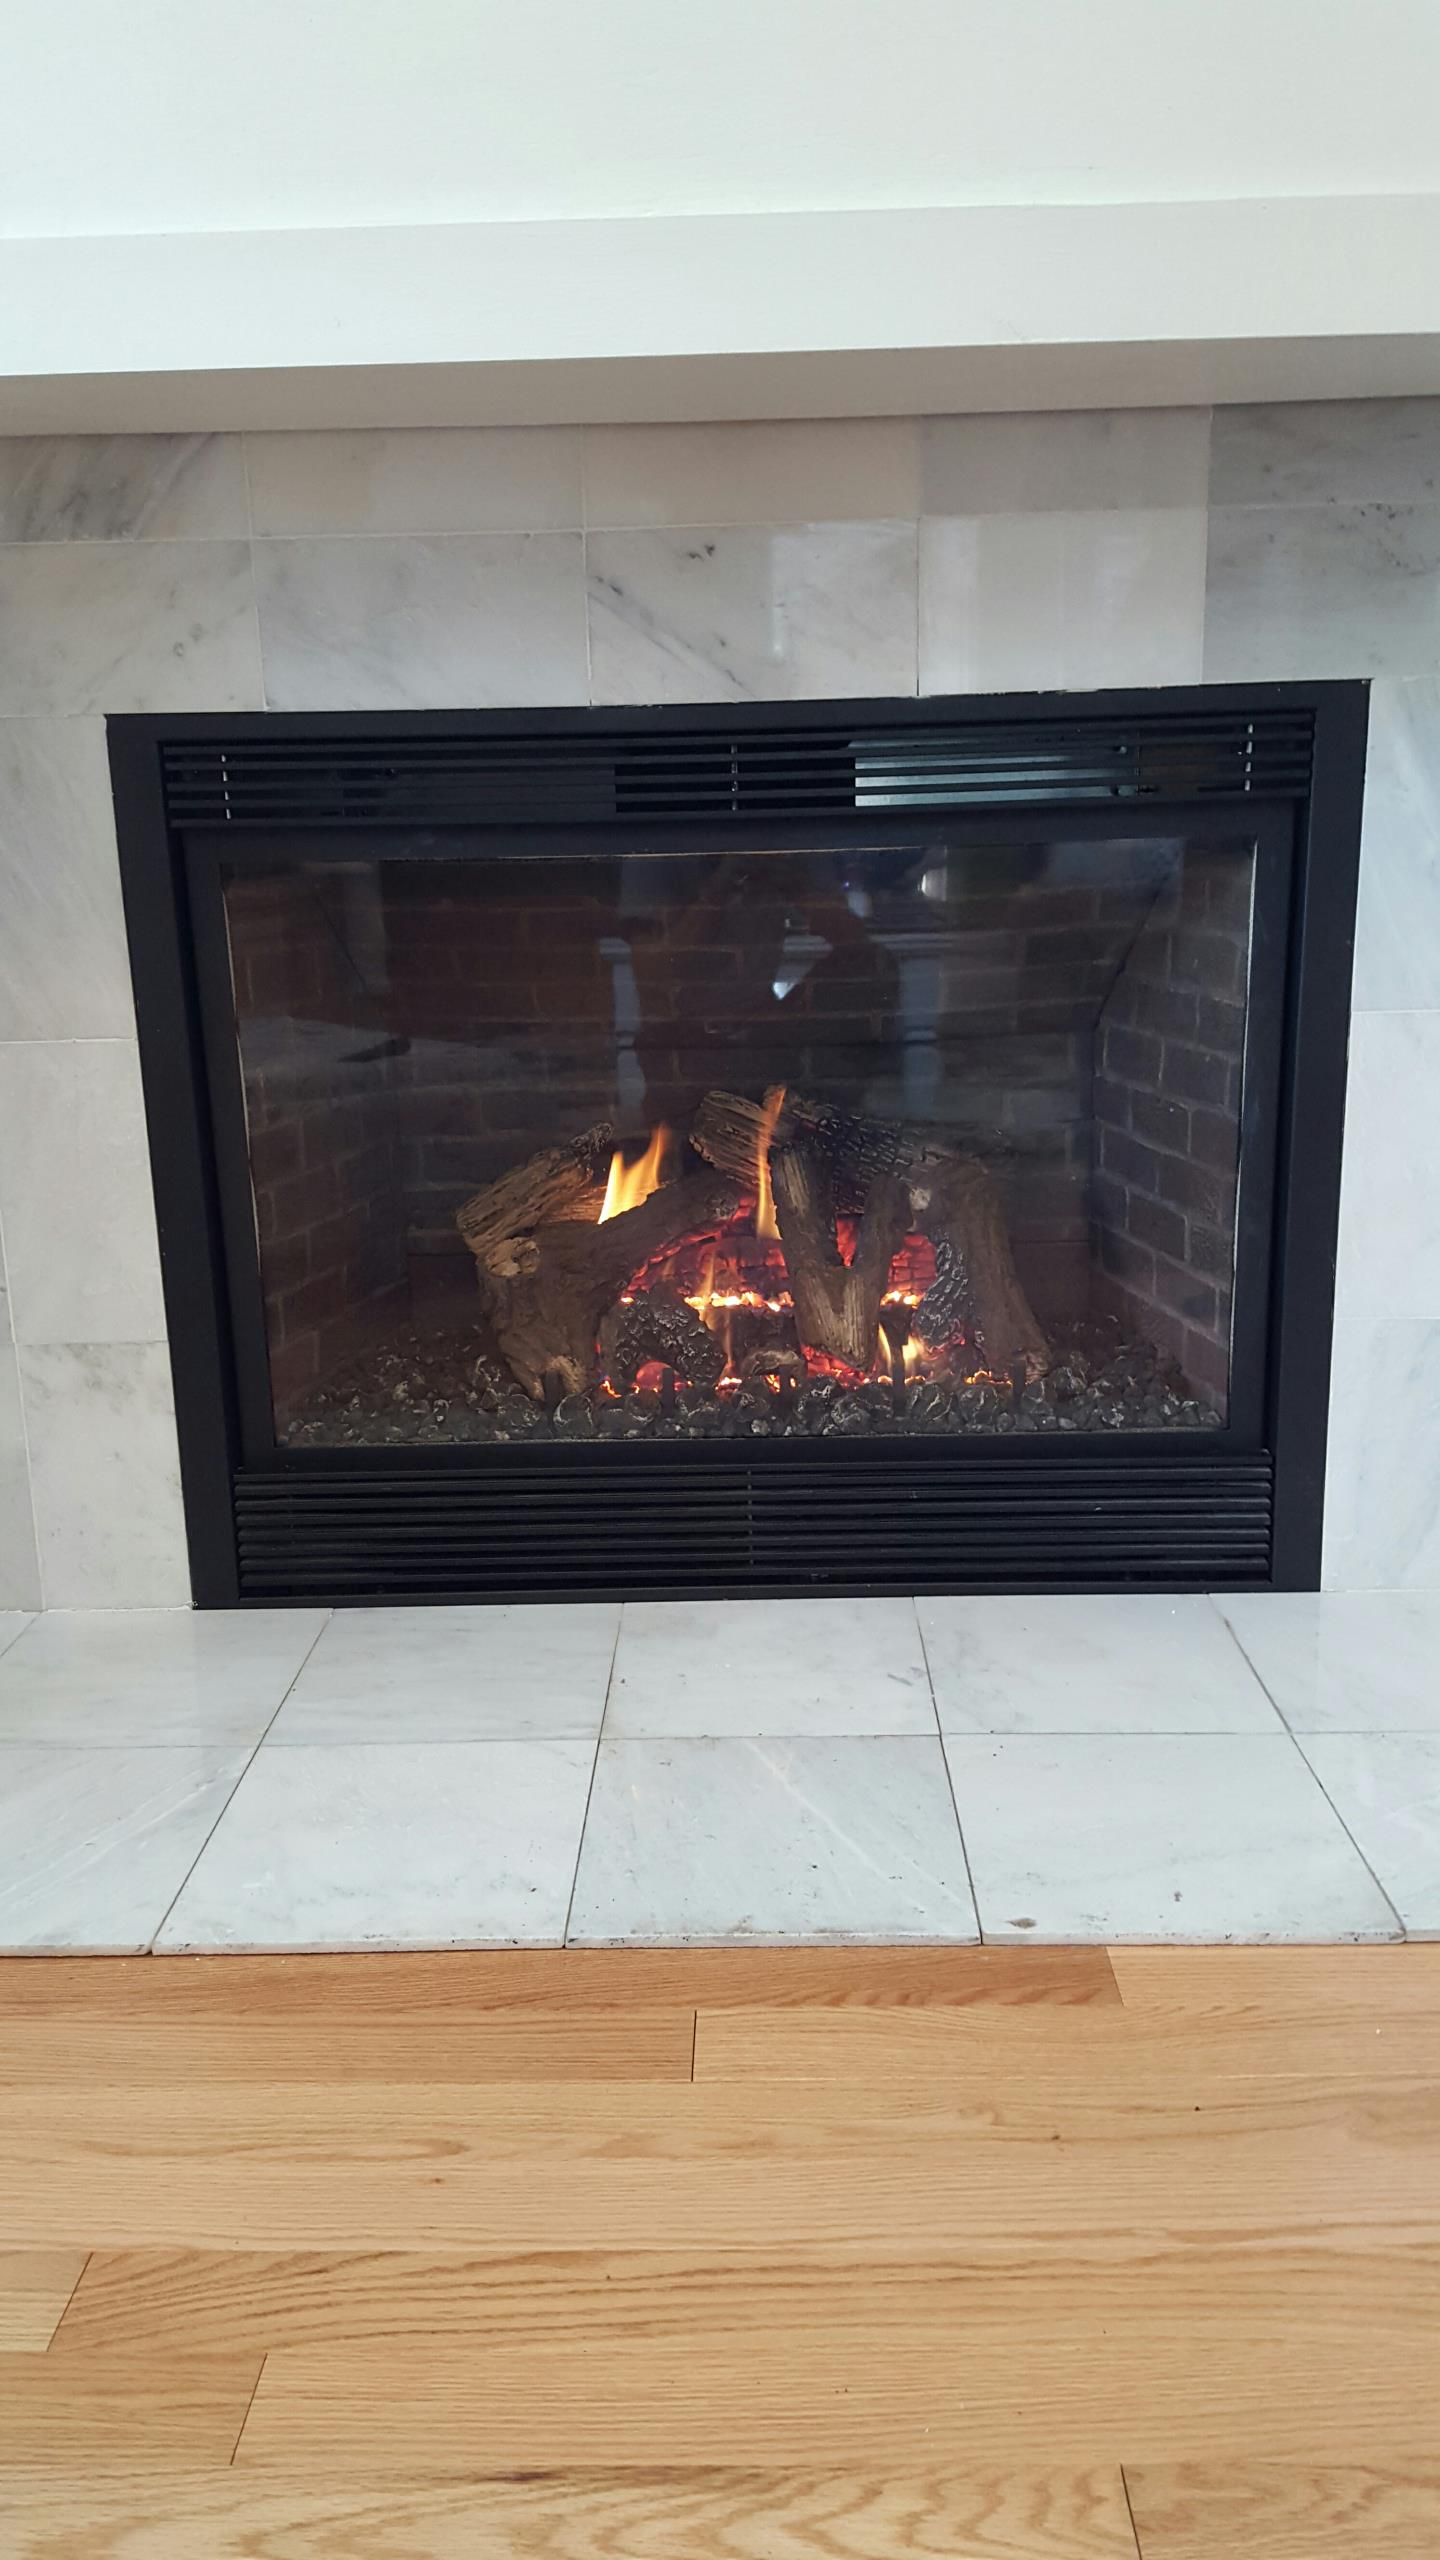 Groovy Fireplace Repair Mendota Fireplace Repair Download Free Architecture Designs Scobabritishbridgeorg